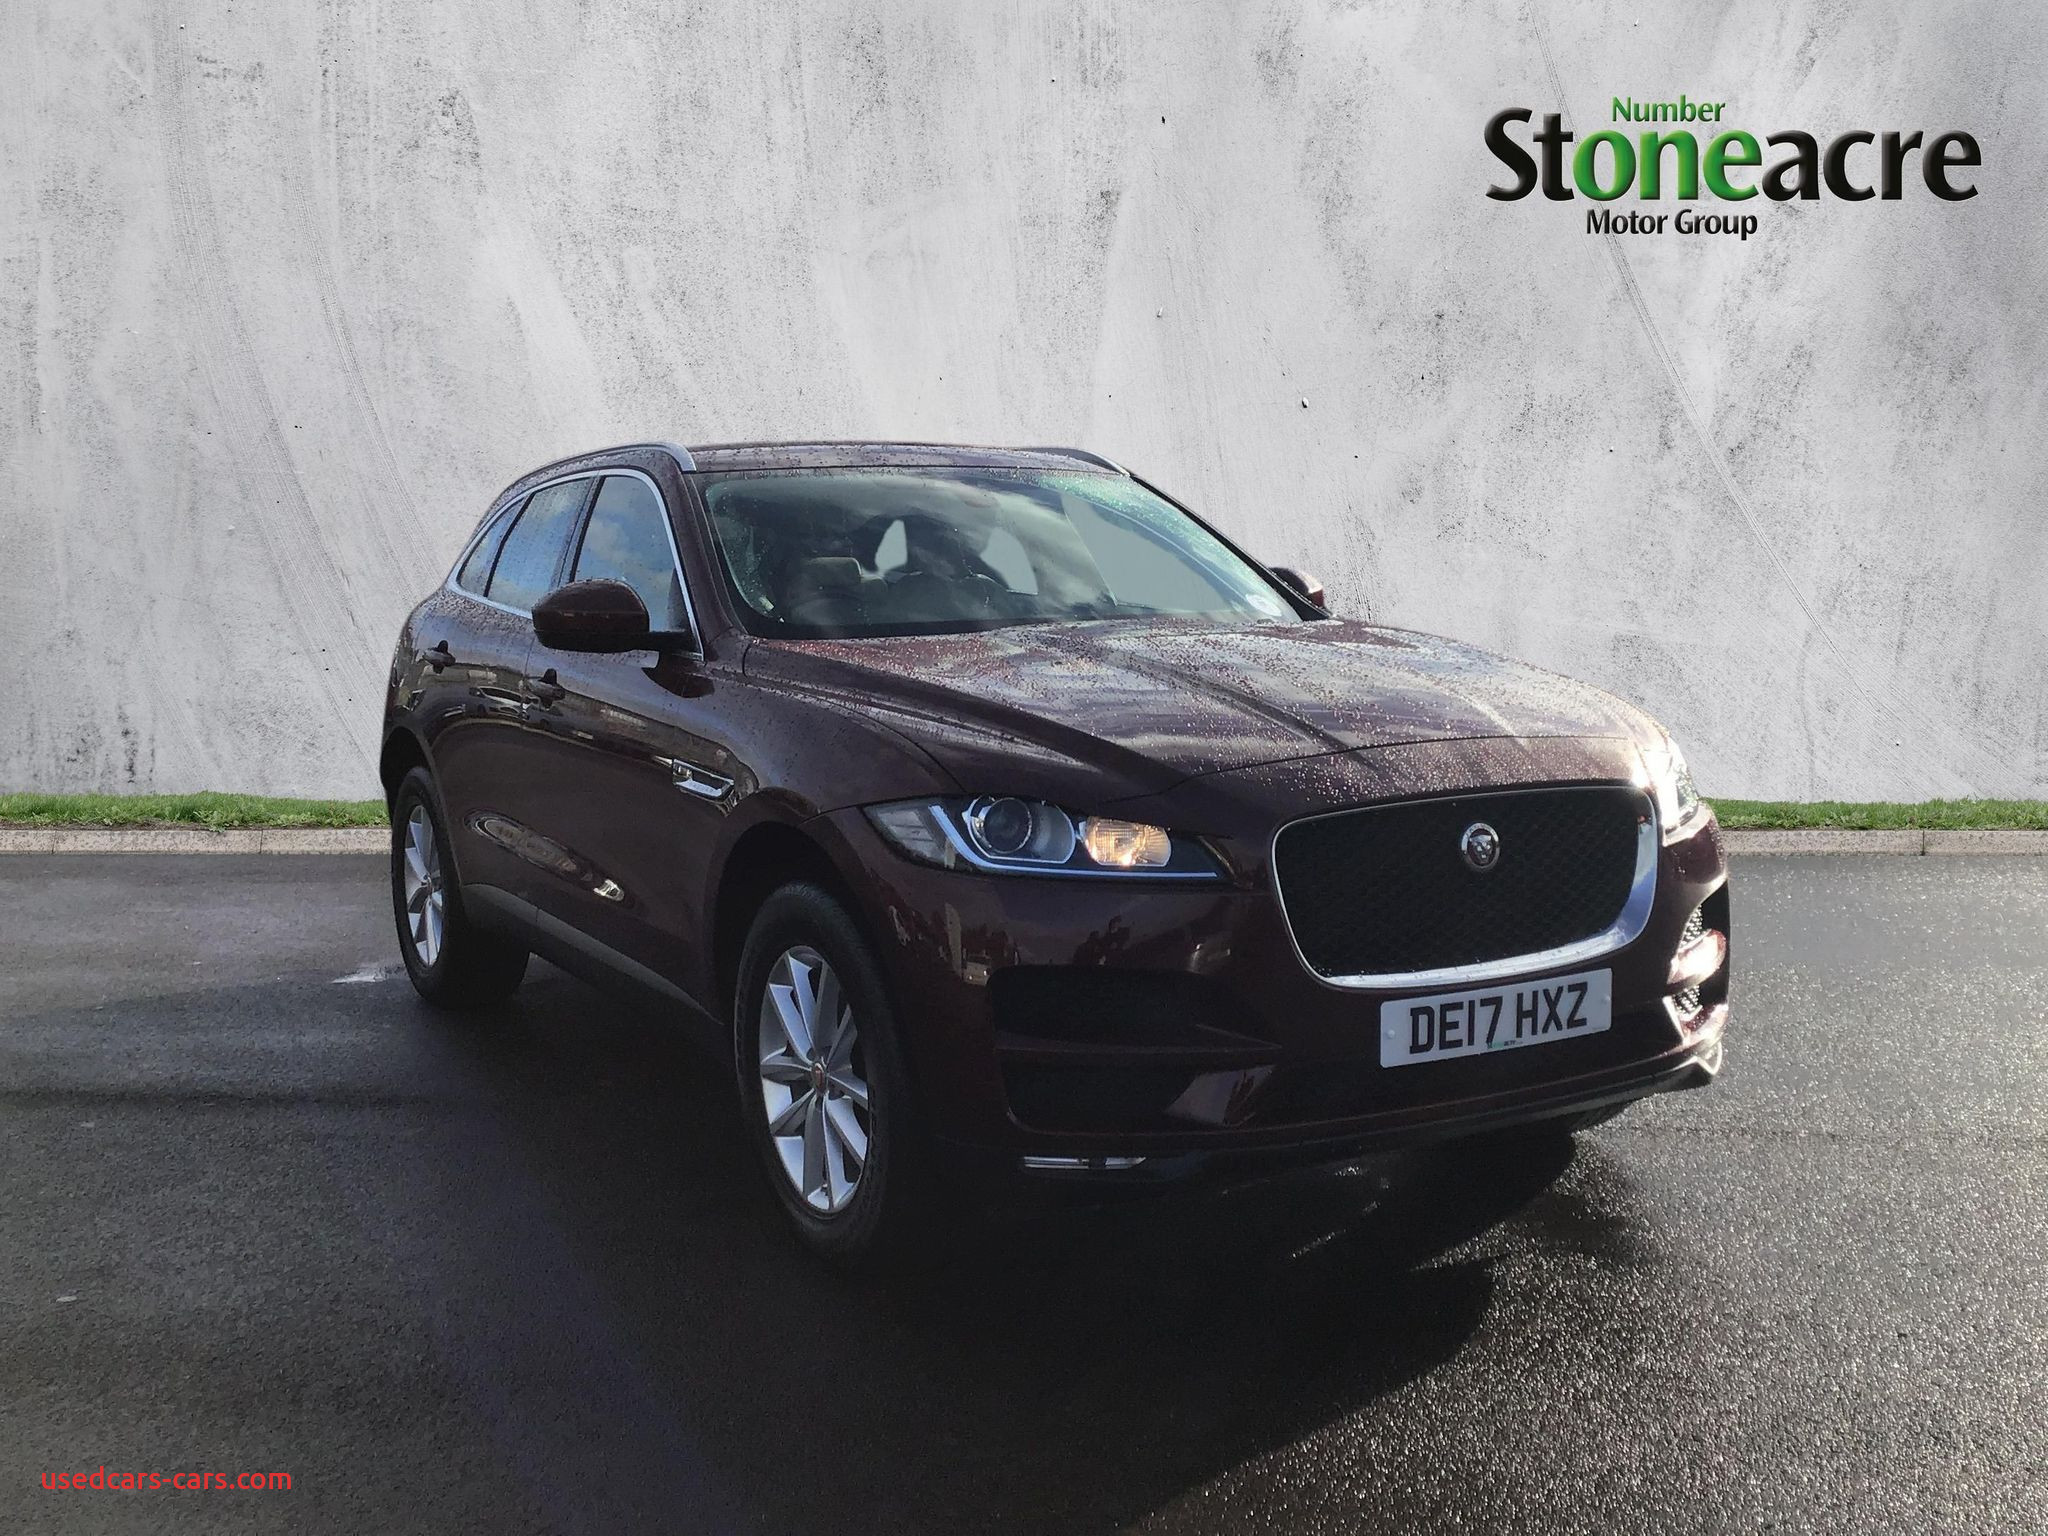 Used Cars for Sale 6000 Elegant Used Jaguar F Pace for Sale Stoneacre